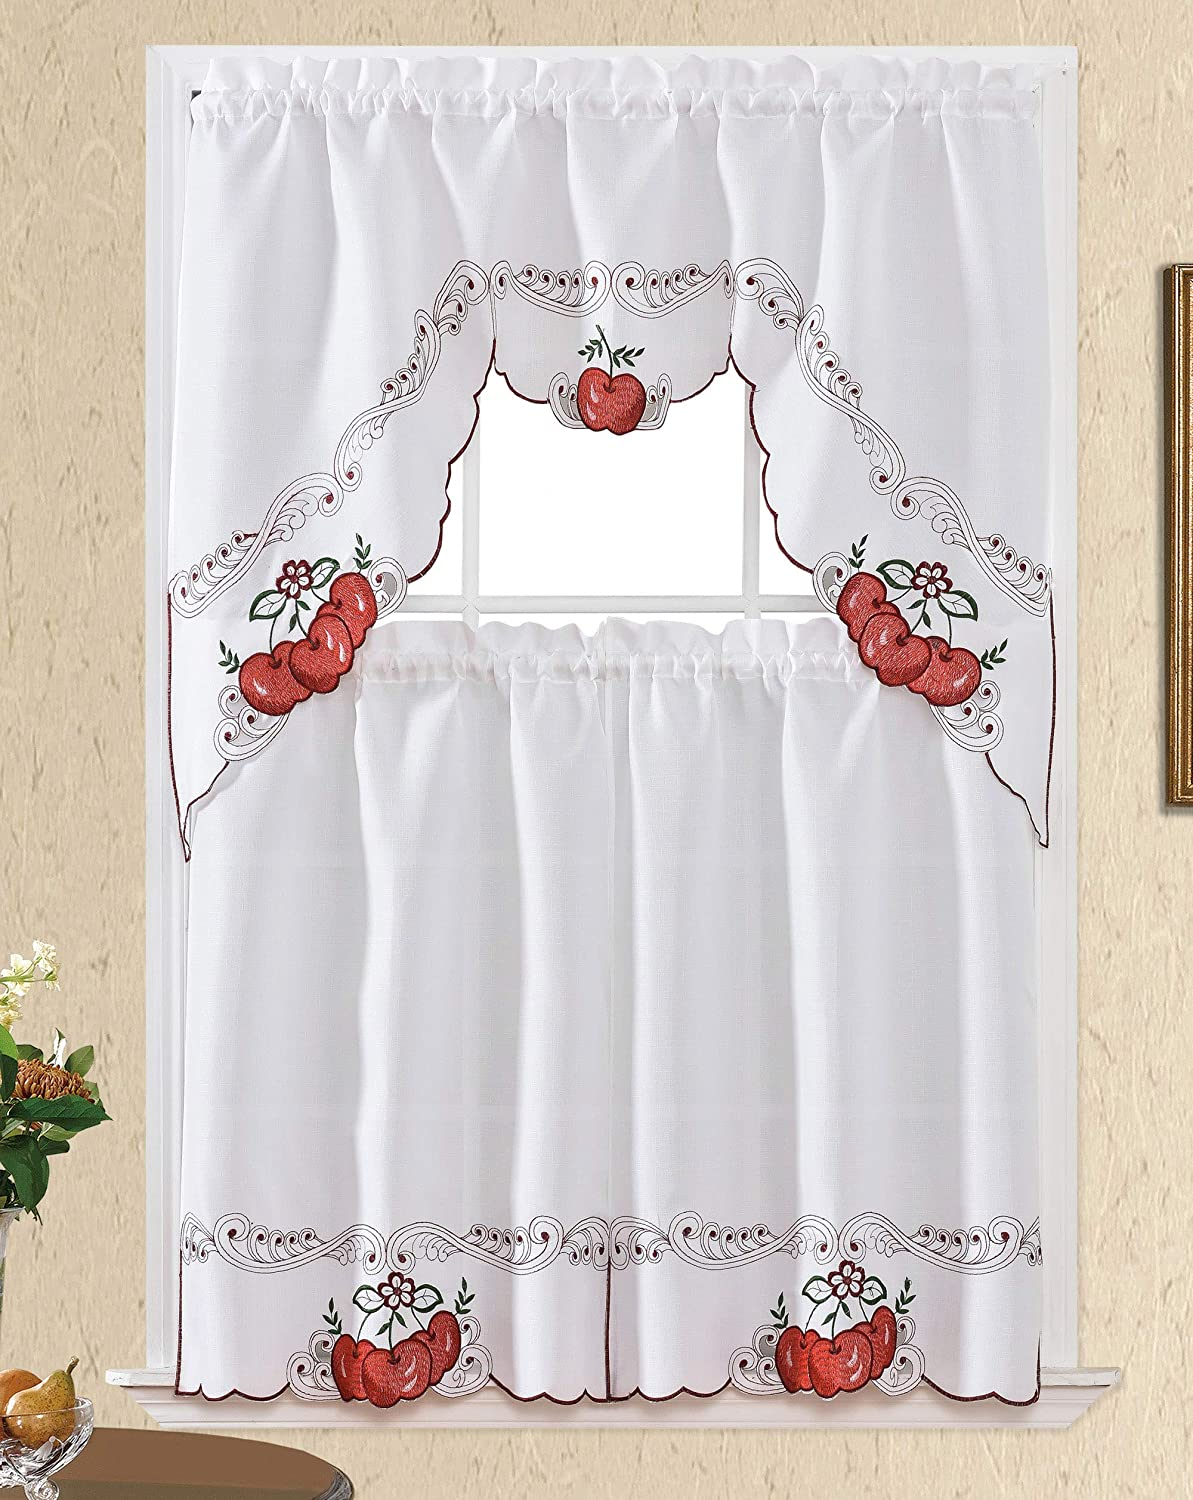 Sweet Harvest. 3pcs Kitchen Cafe Curtain Set. Nice Embroidery Fruit Design with Cutworks. (Swag and 36 inches Tiers Set, Red Apple)